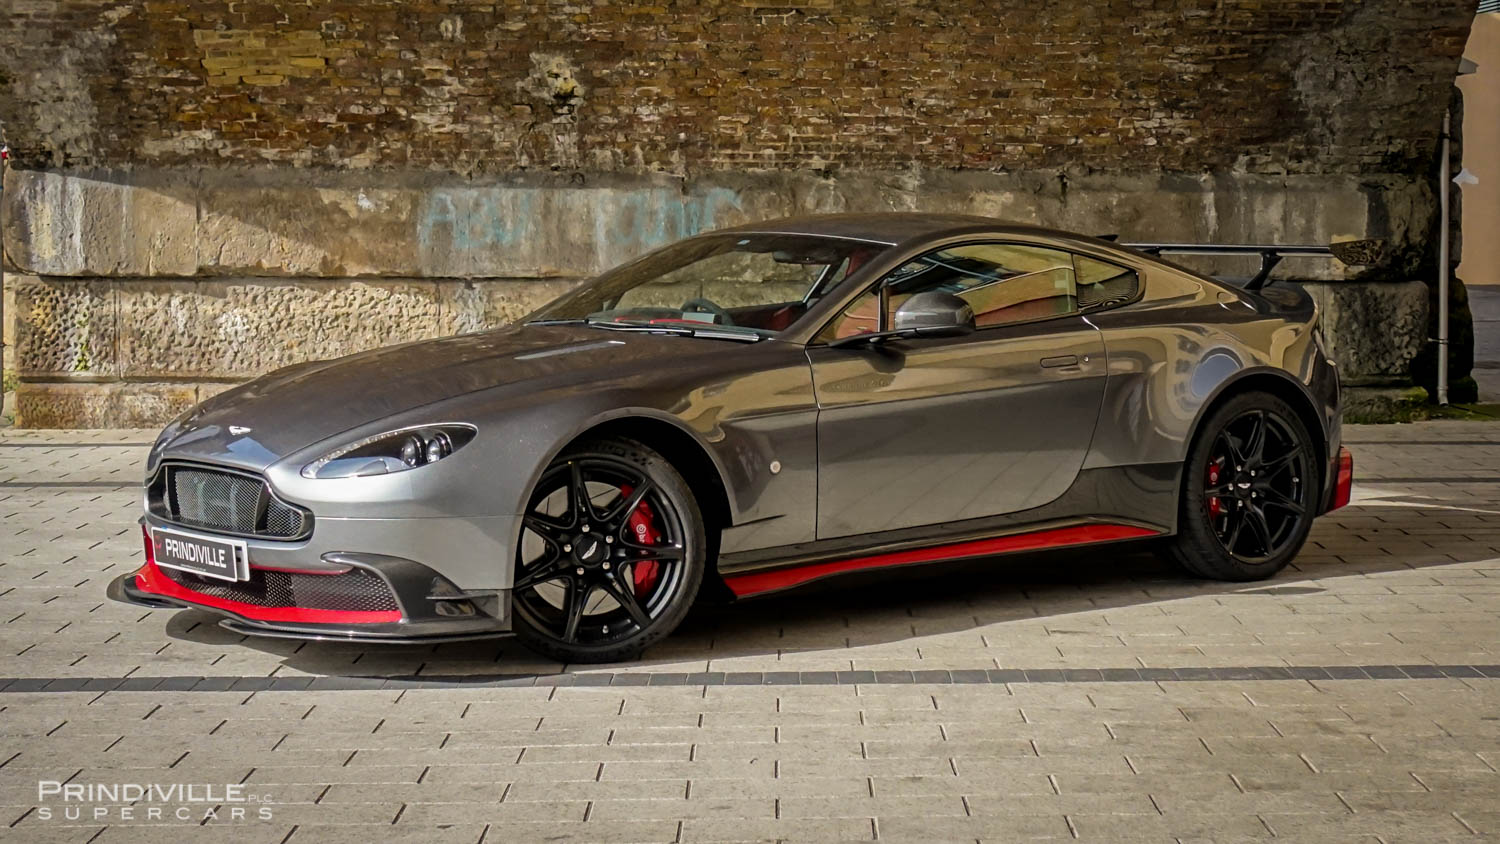 Hellcat Challenger For Sale >> Used Aston Martin Vantage GT8 | For Sale! UK Special! | Auto-Hype